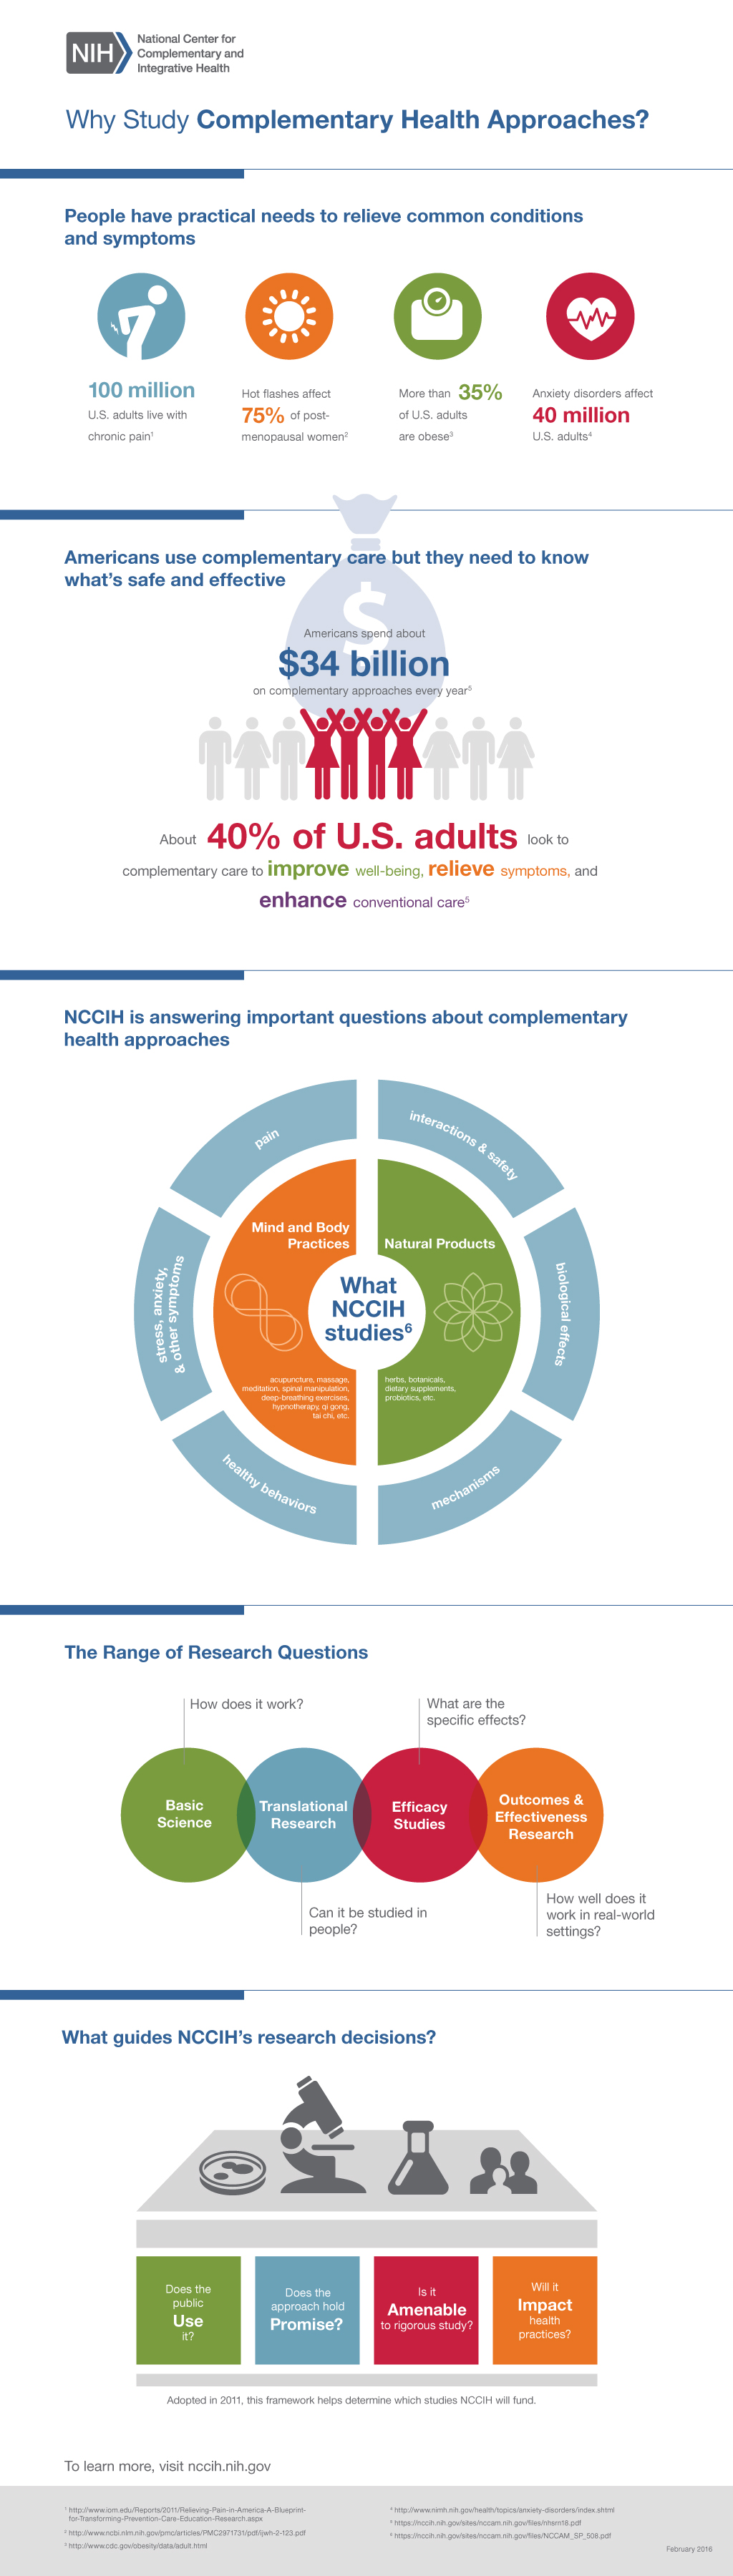 This graphic shows Why NCCIH studies Complementary Health Practices. Follow text version links provided on each section link below for full description.